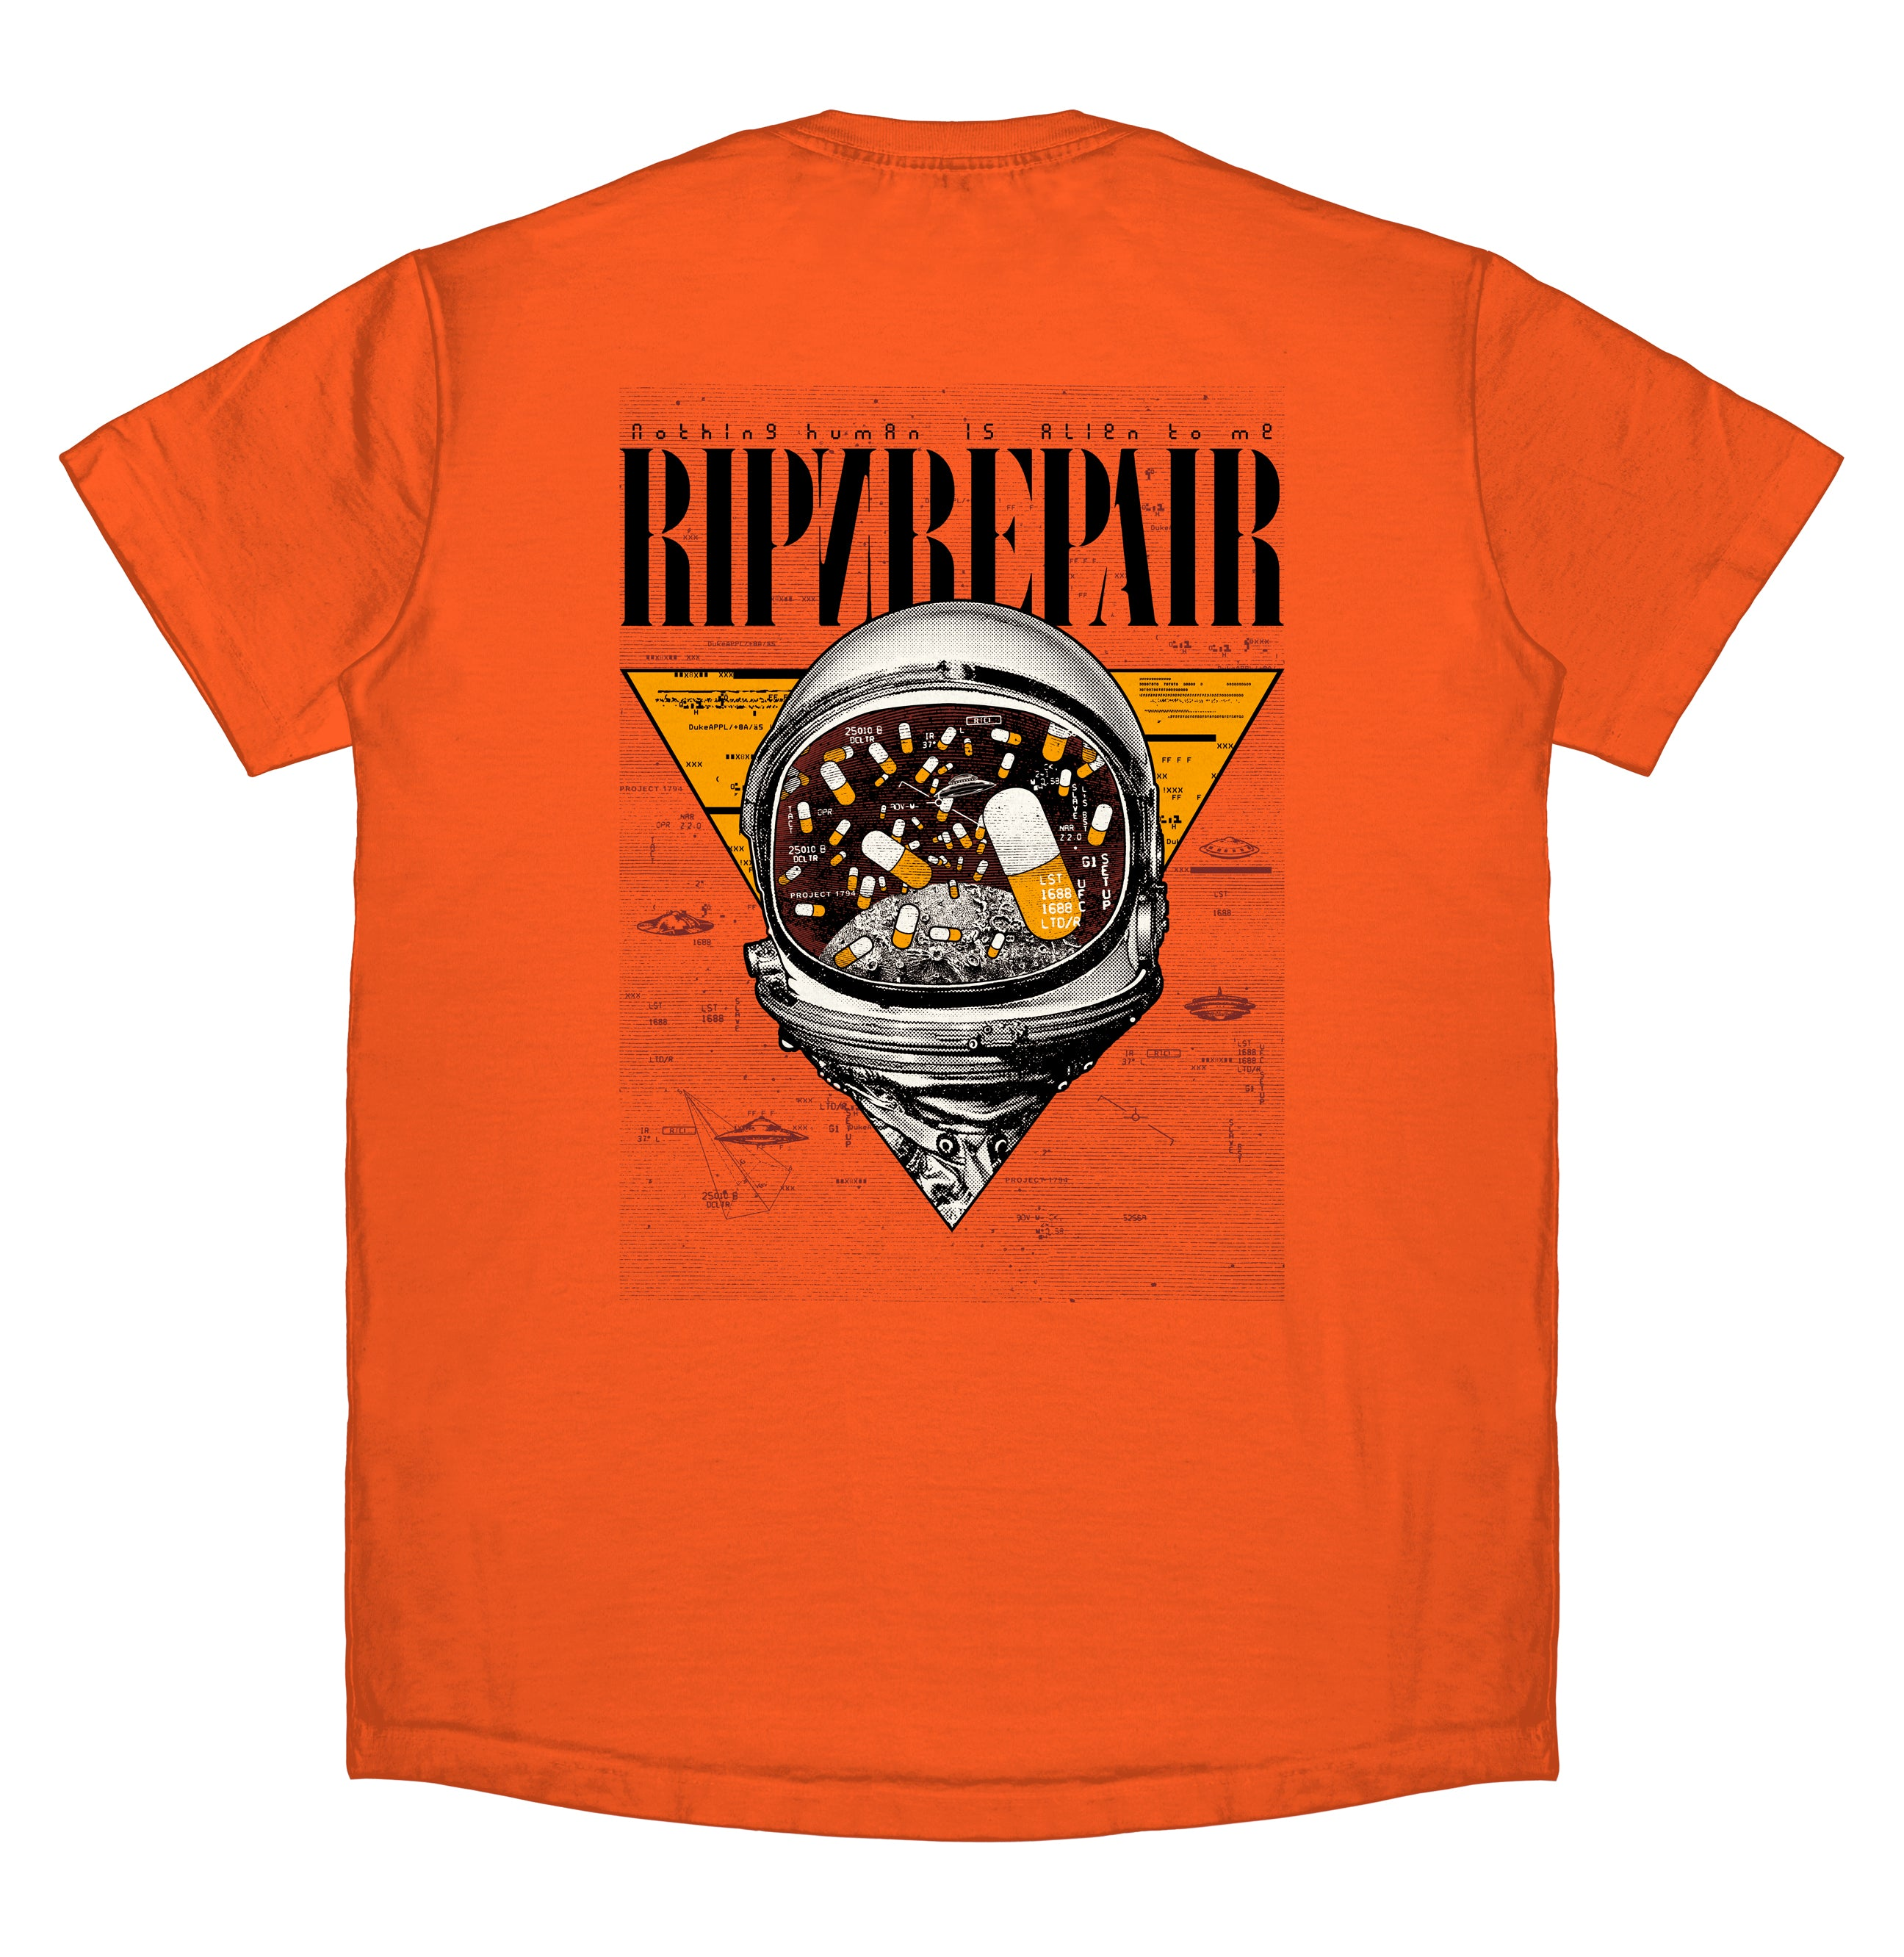 My Space - T-Shirt (Orange) - RIPNRPR